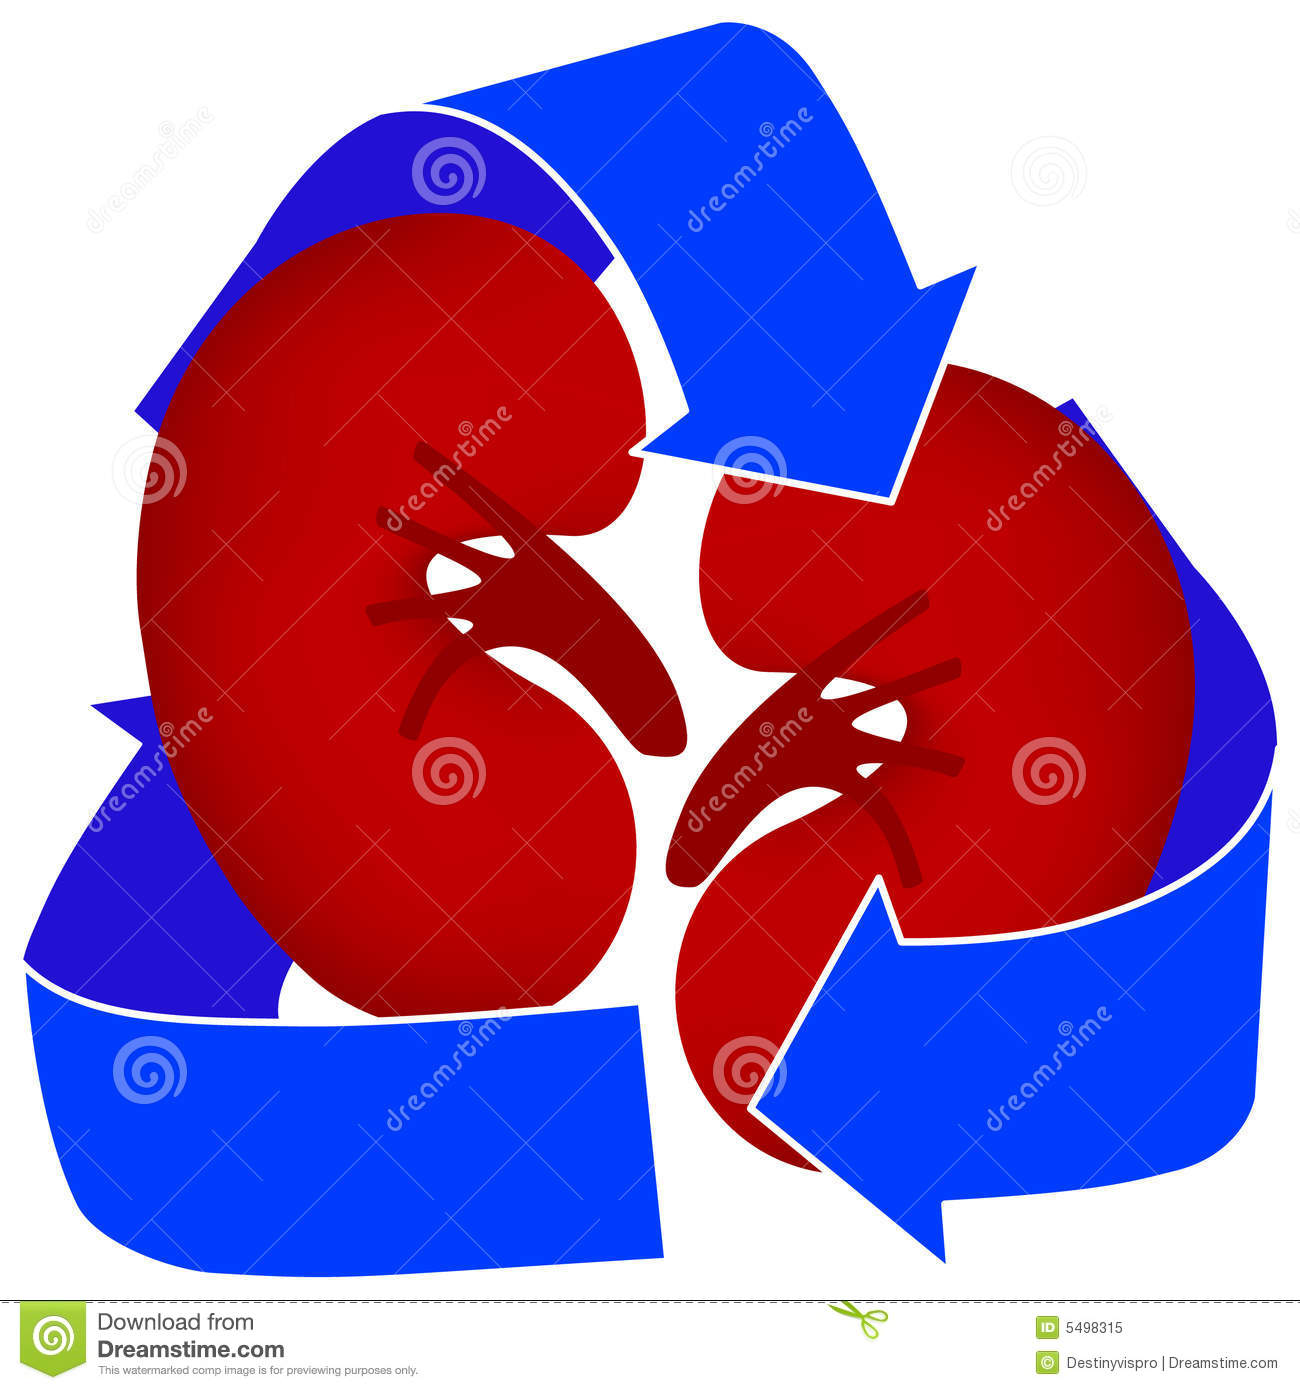 Organ Donation Or Kidney Dialysis  Clean Simple Medical Icon